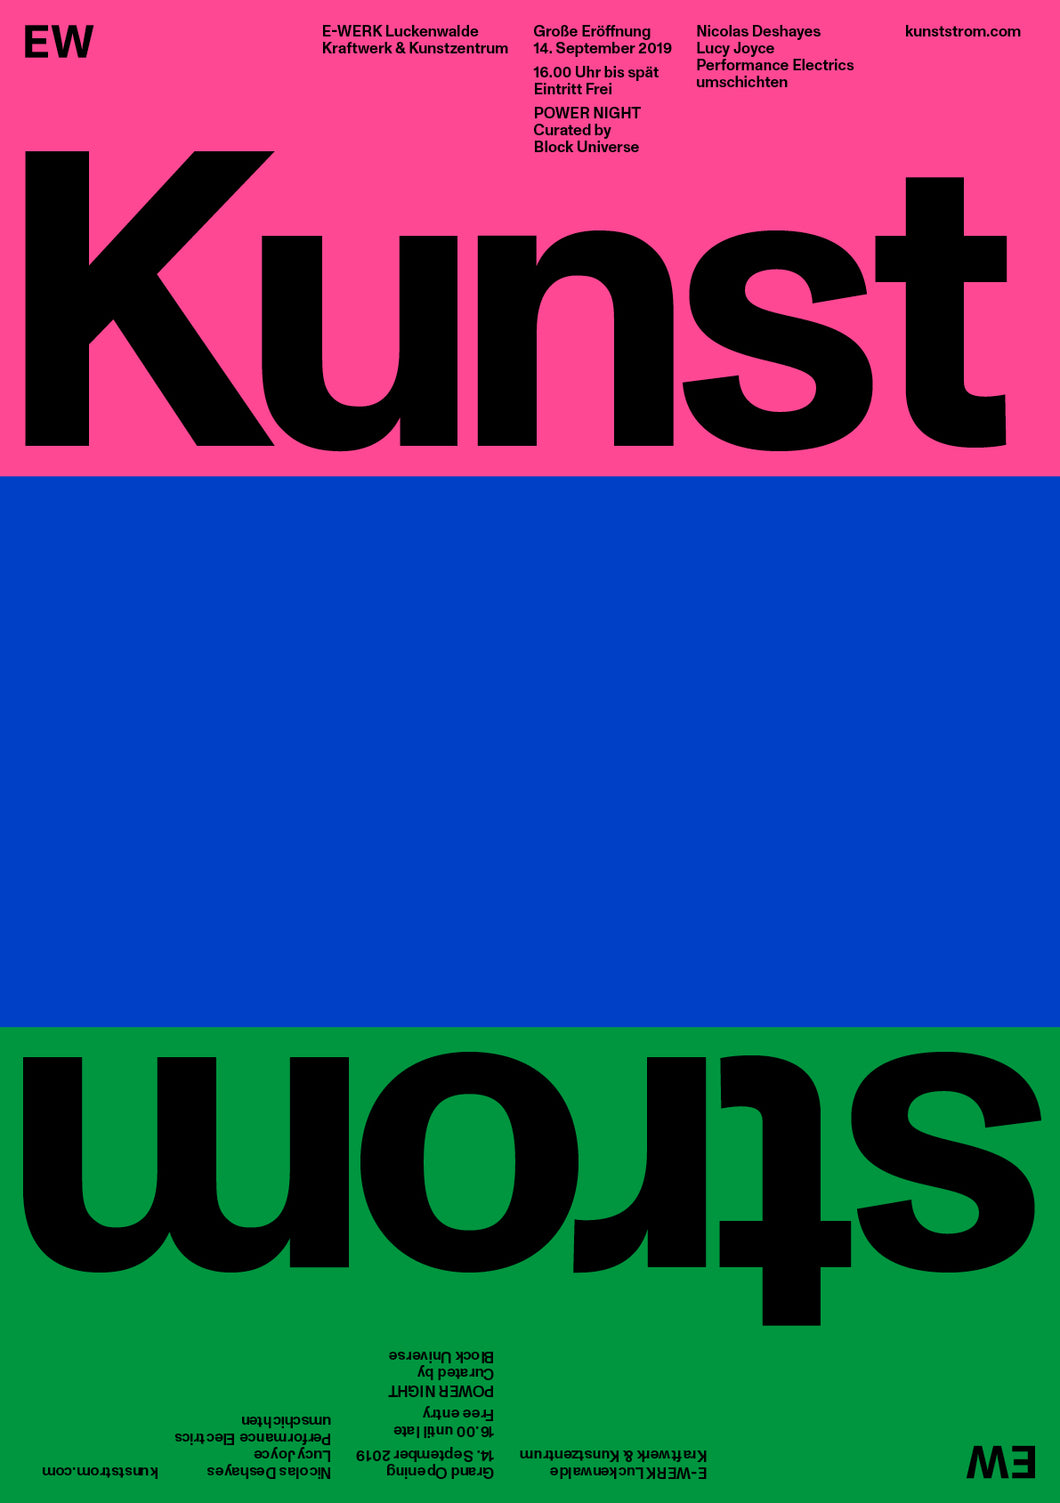 Kunststrom Poster 1-Sided (B1) Pink, Blue, Green